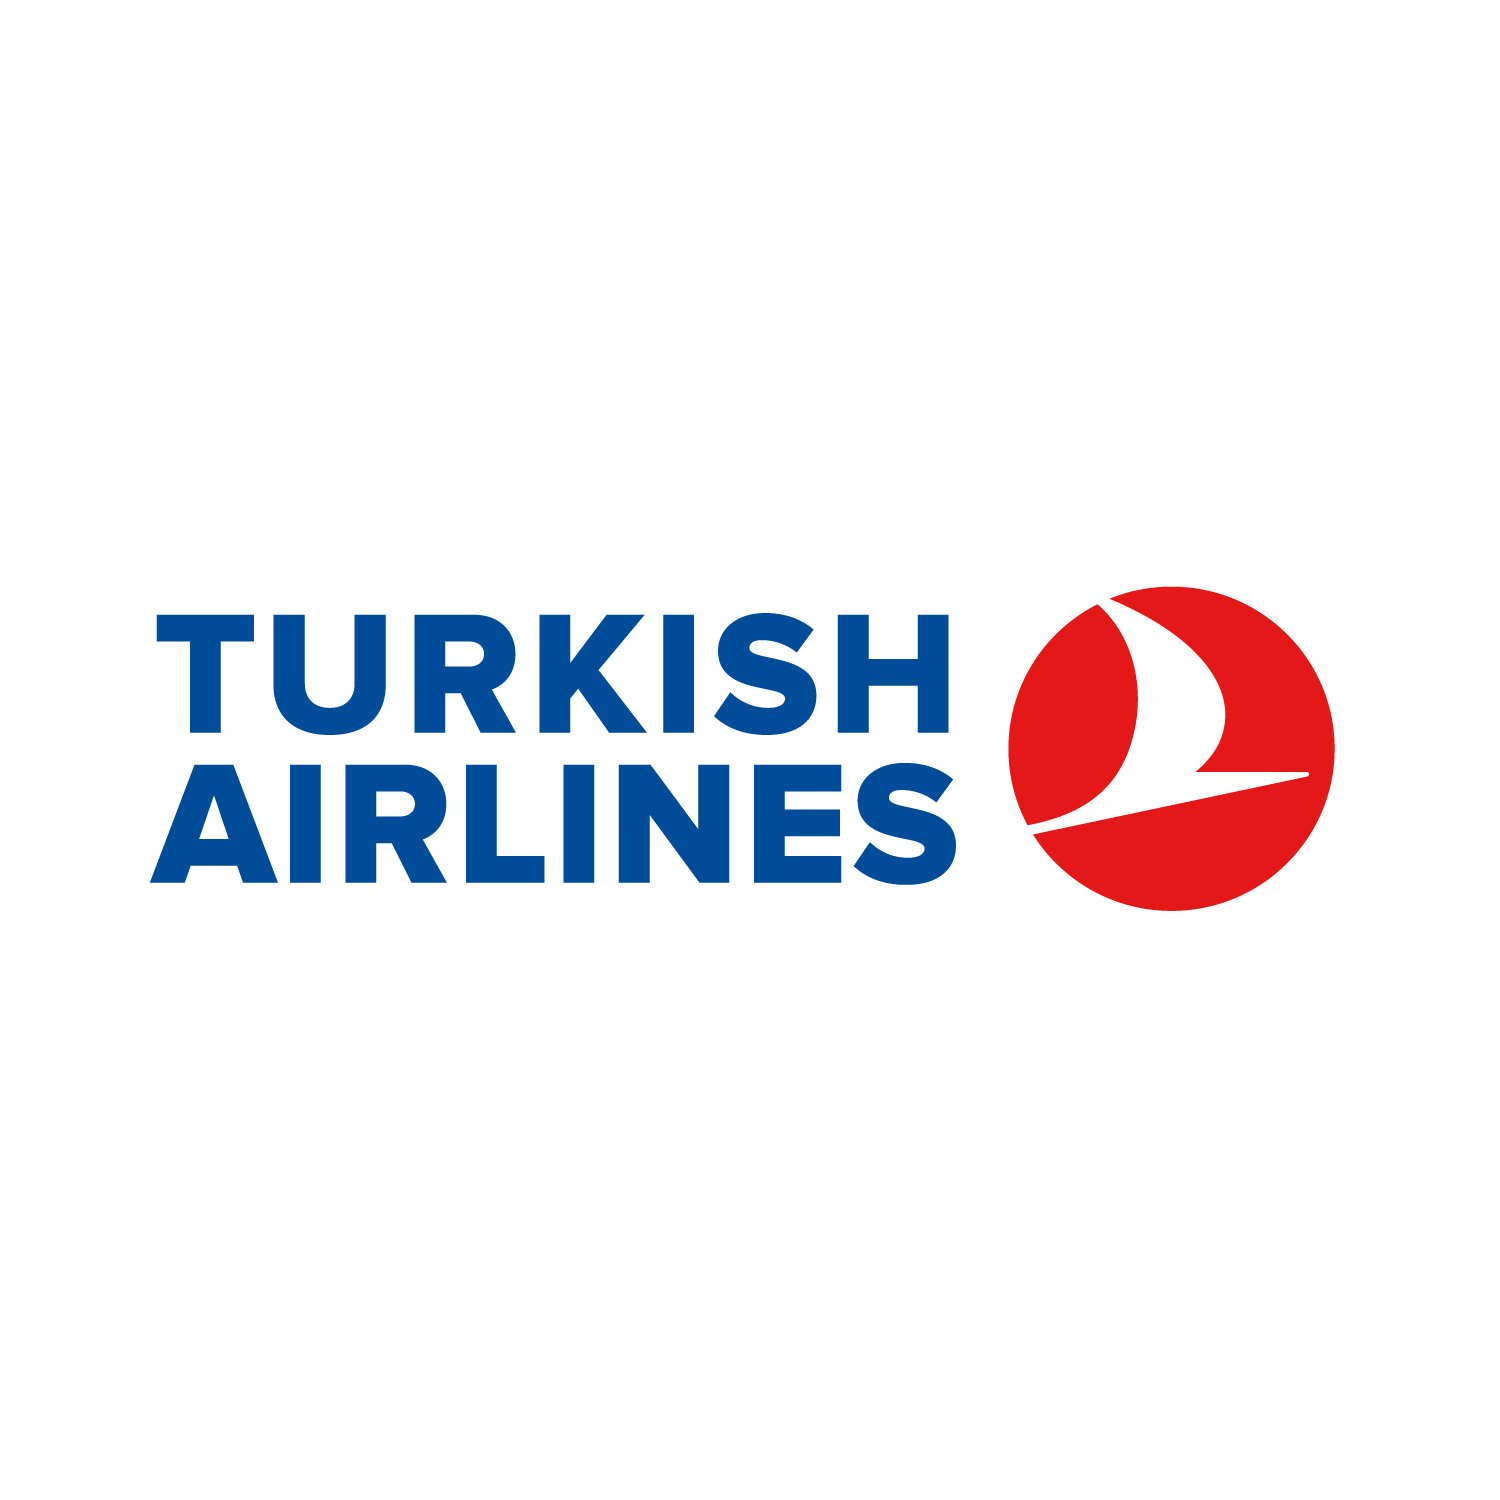 Turkish Airlines Inc